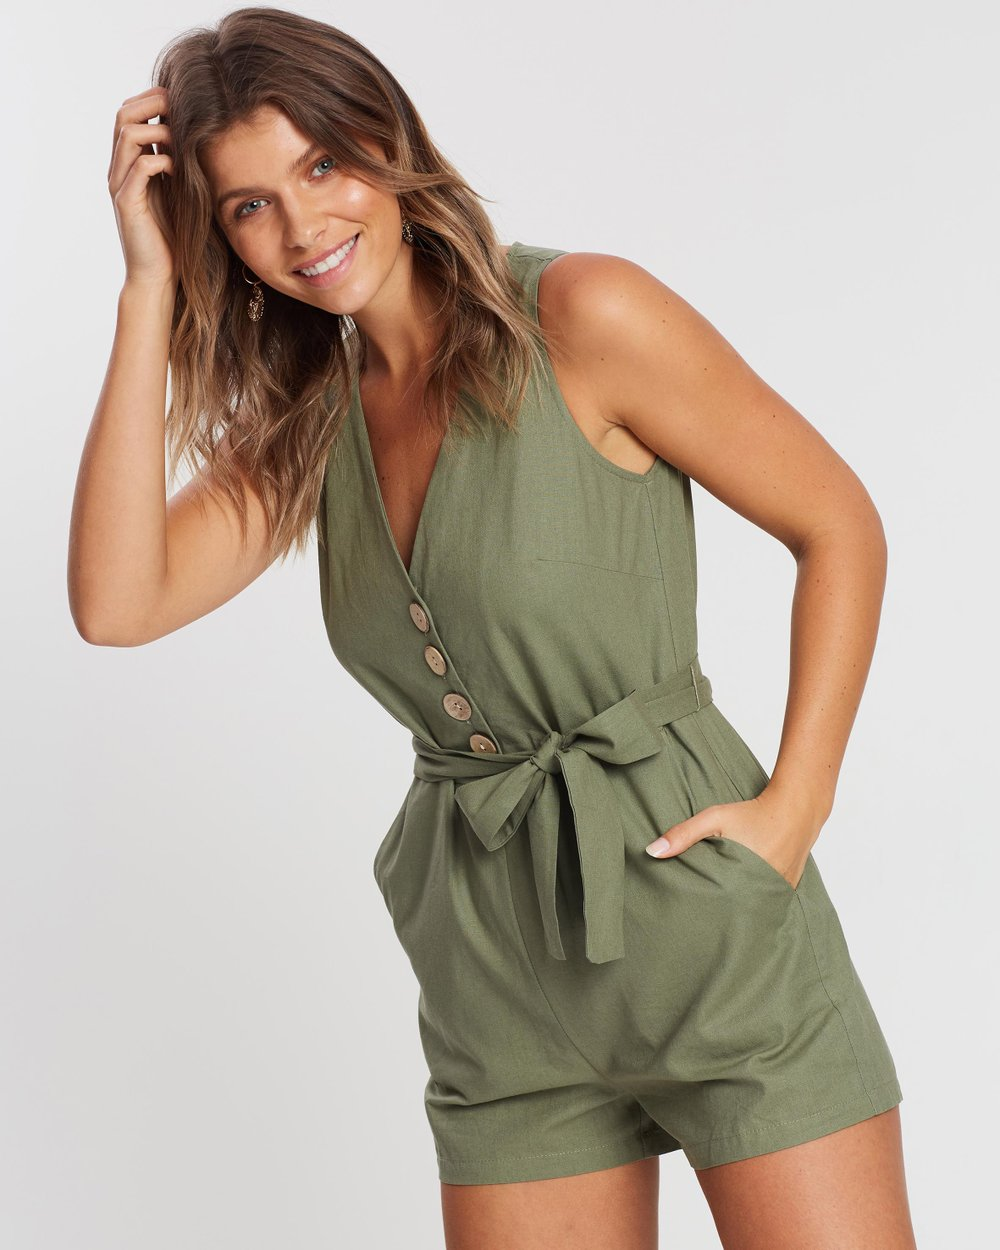 56f33982544 ICONIC EXCLUSIVE - Sandyha Playsuit by Atmos Here Online